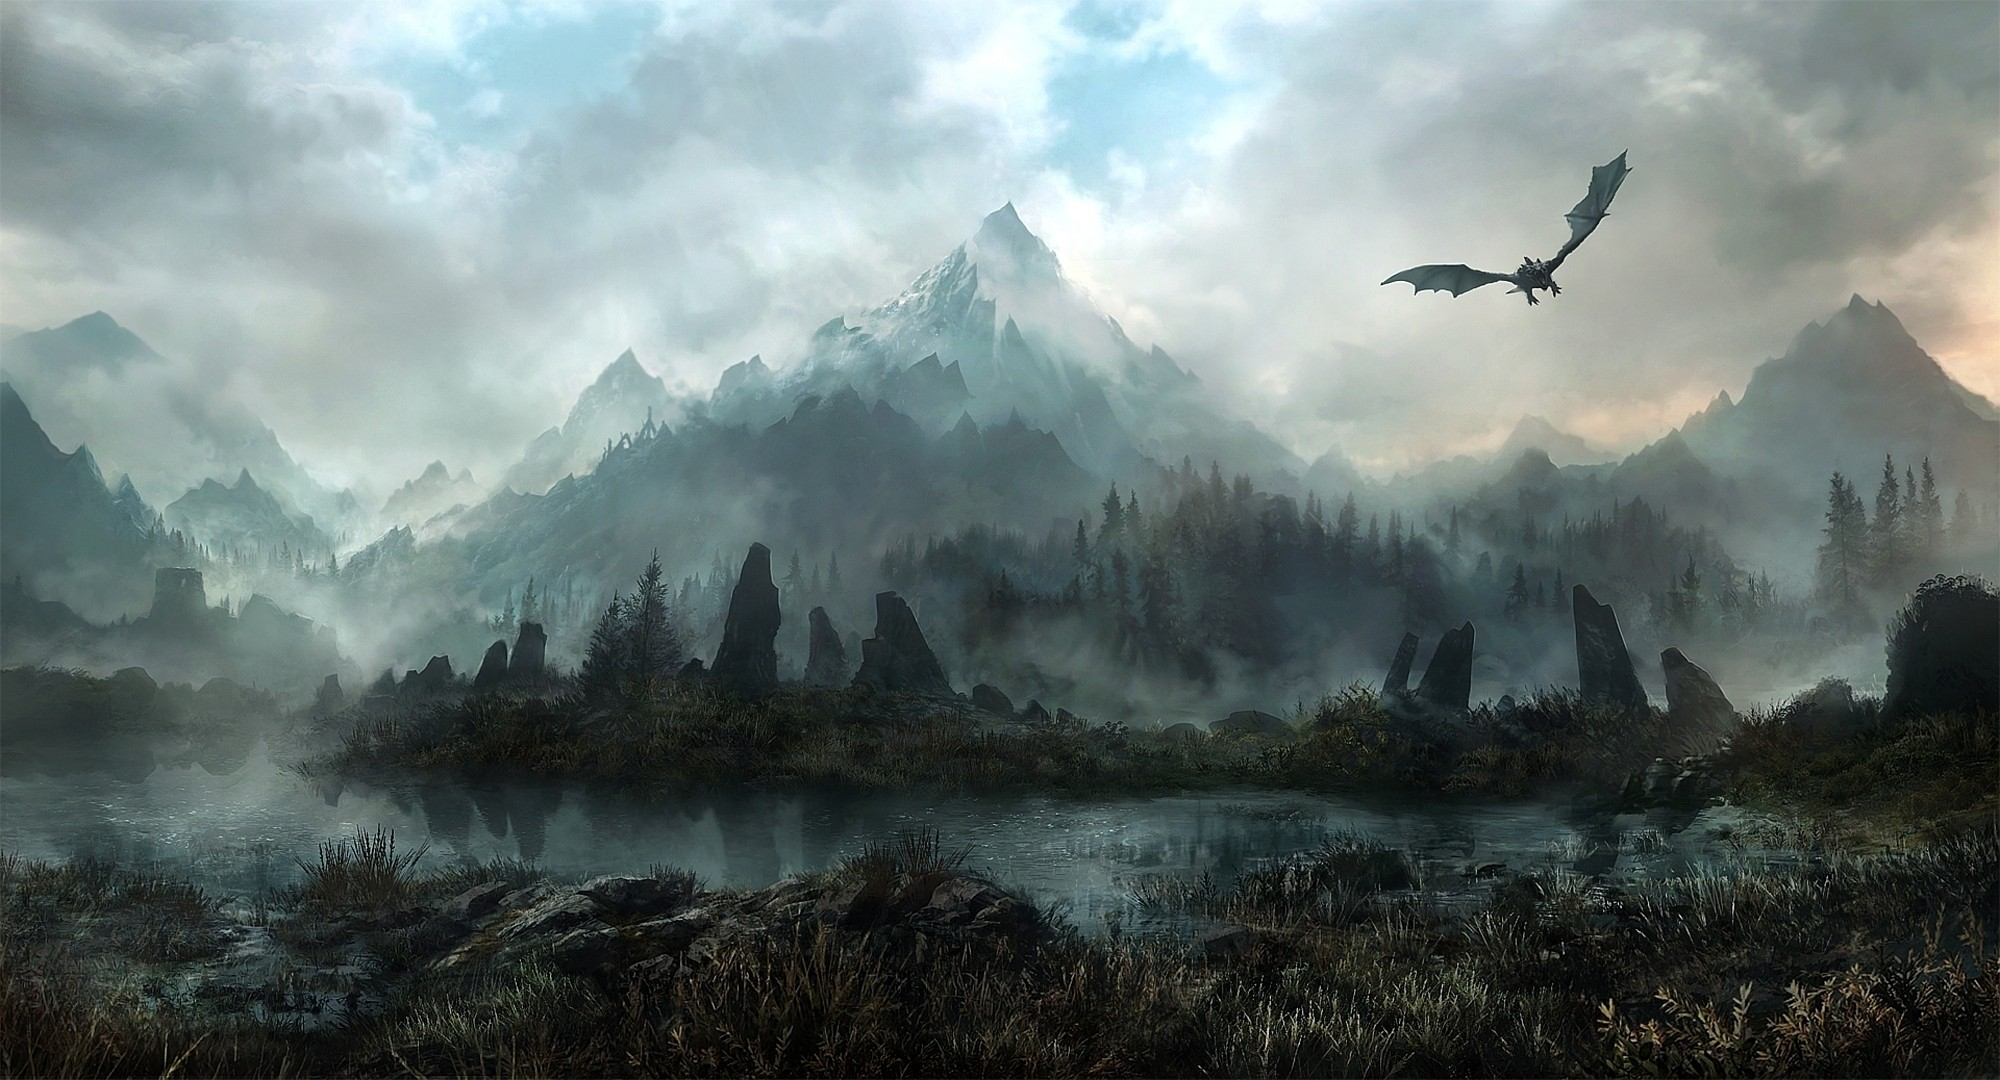 skyrim epic wallpaper, skyrim wallpapers hd